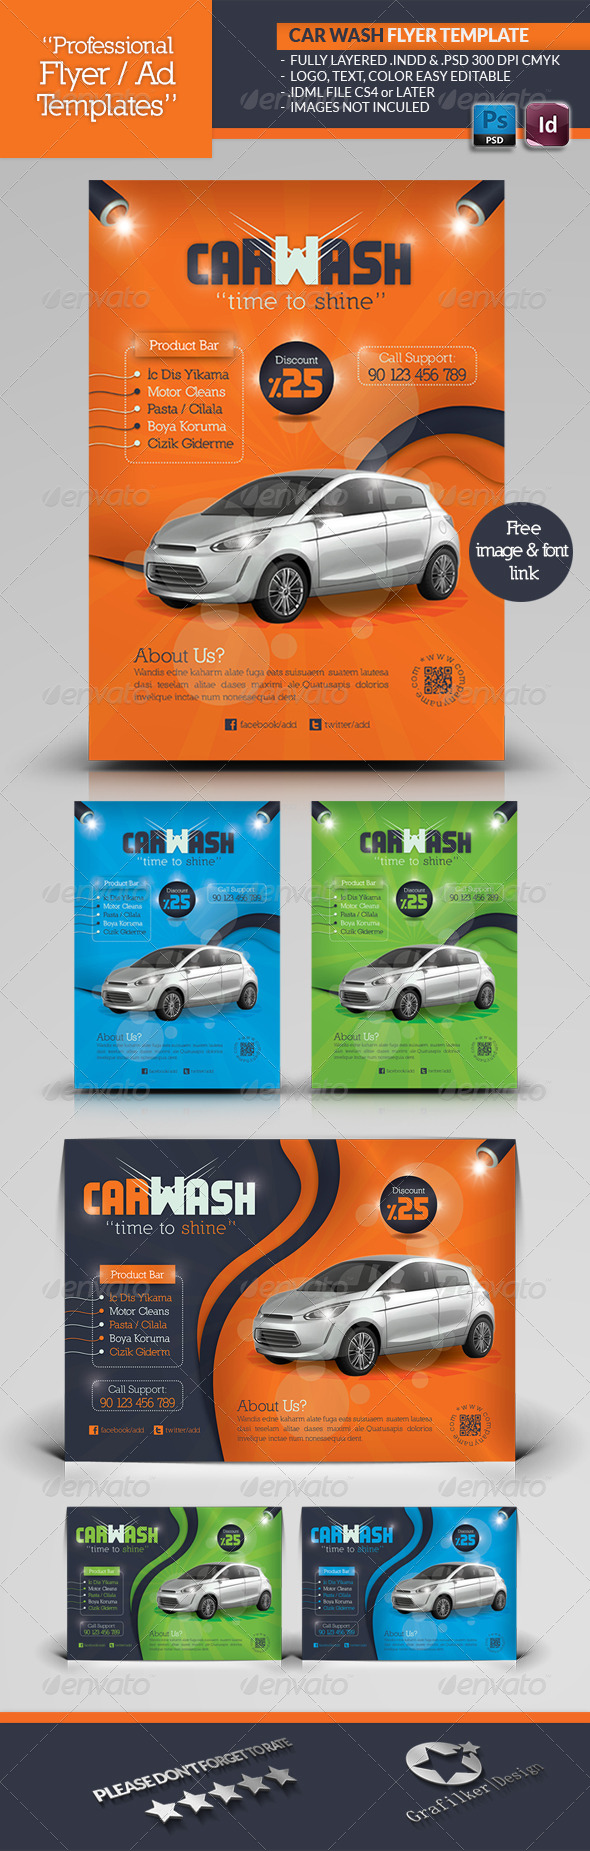 Car Wash Flyer Template - Corporate Flyers